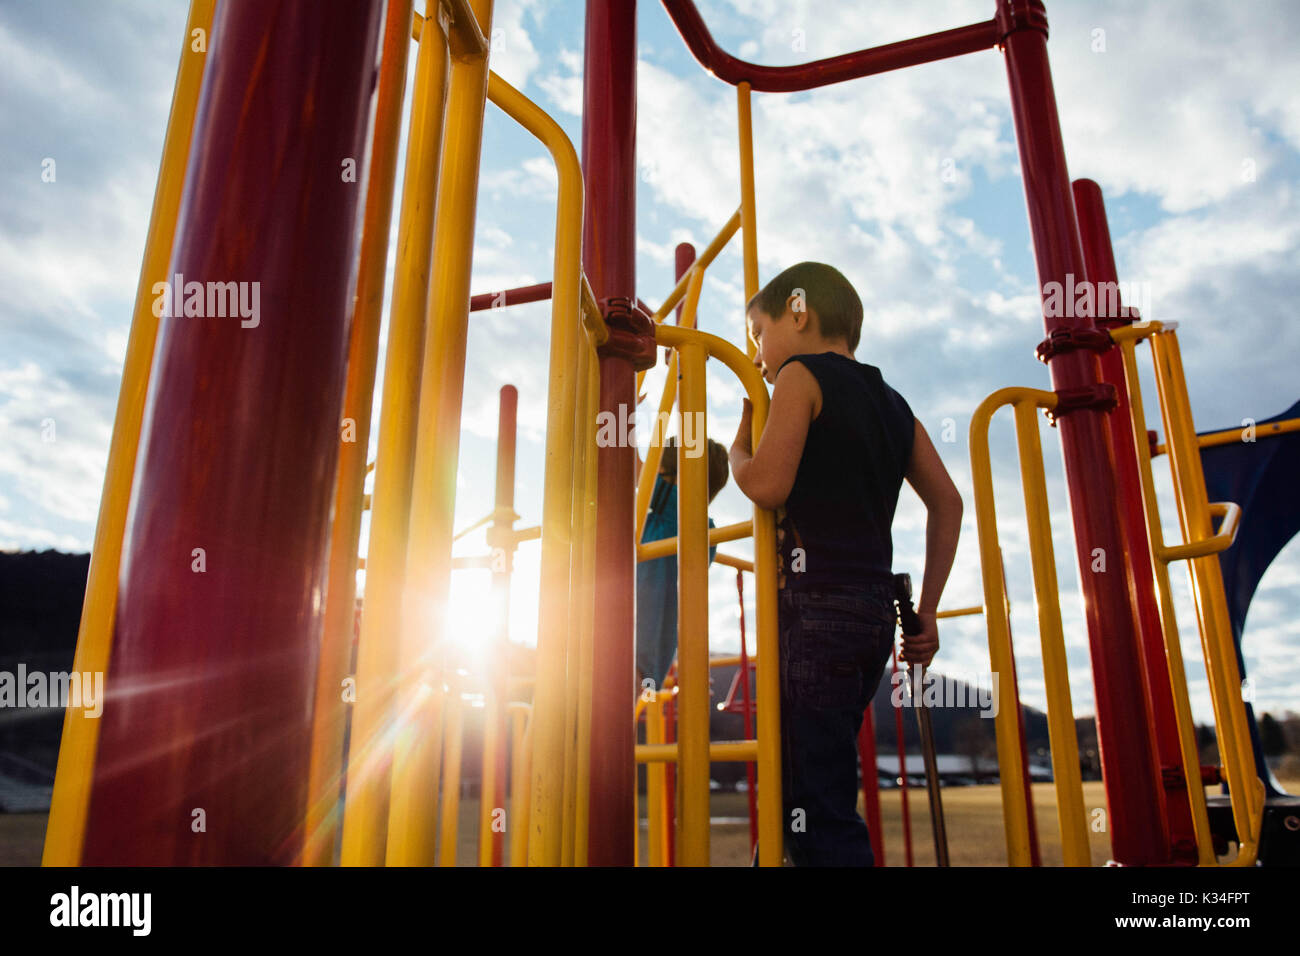 A boy plays on playground equipment at sunset. - Stock Image